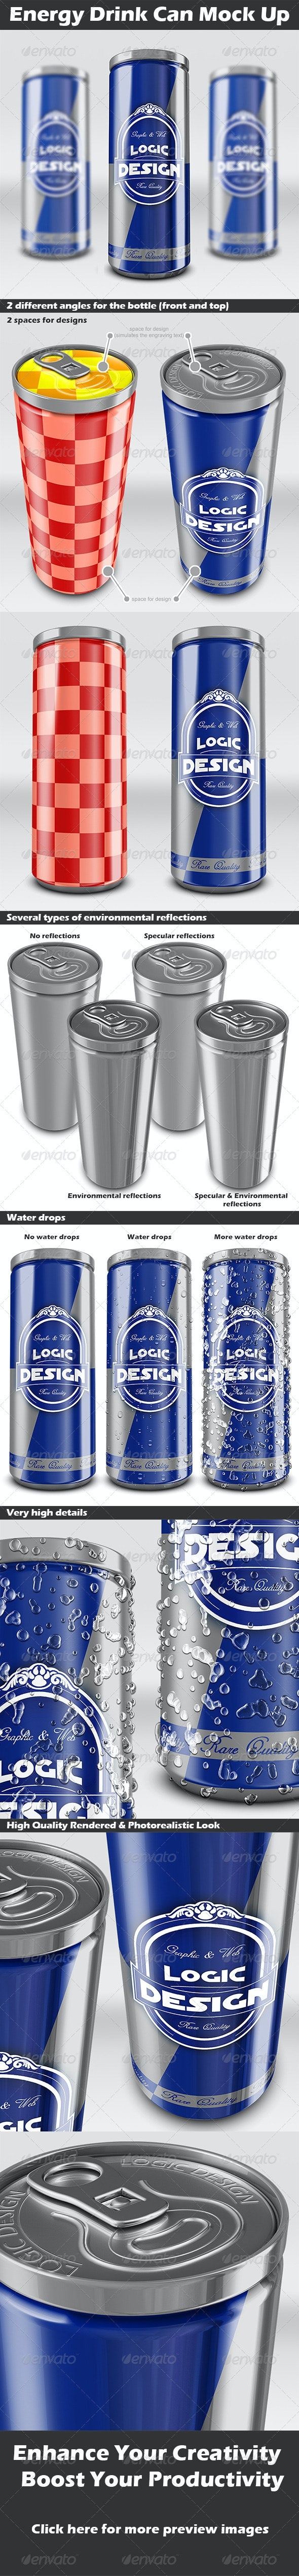 Energy Drink Can Mock Up - Miscellaneous Product Mock-Ups